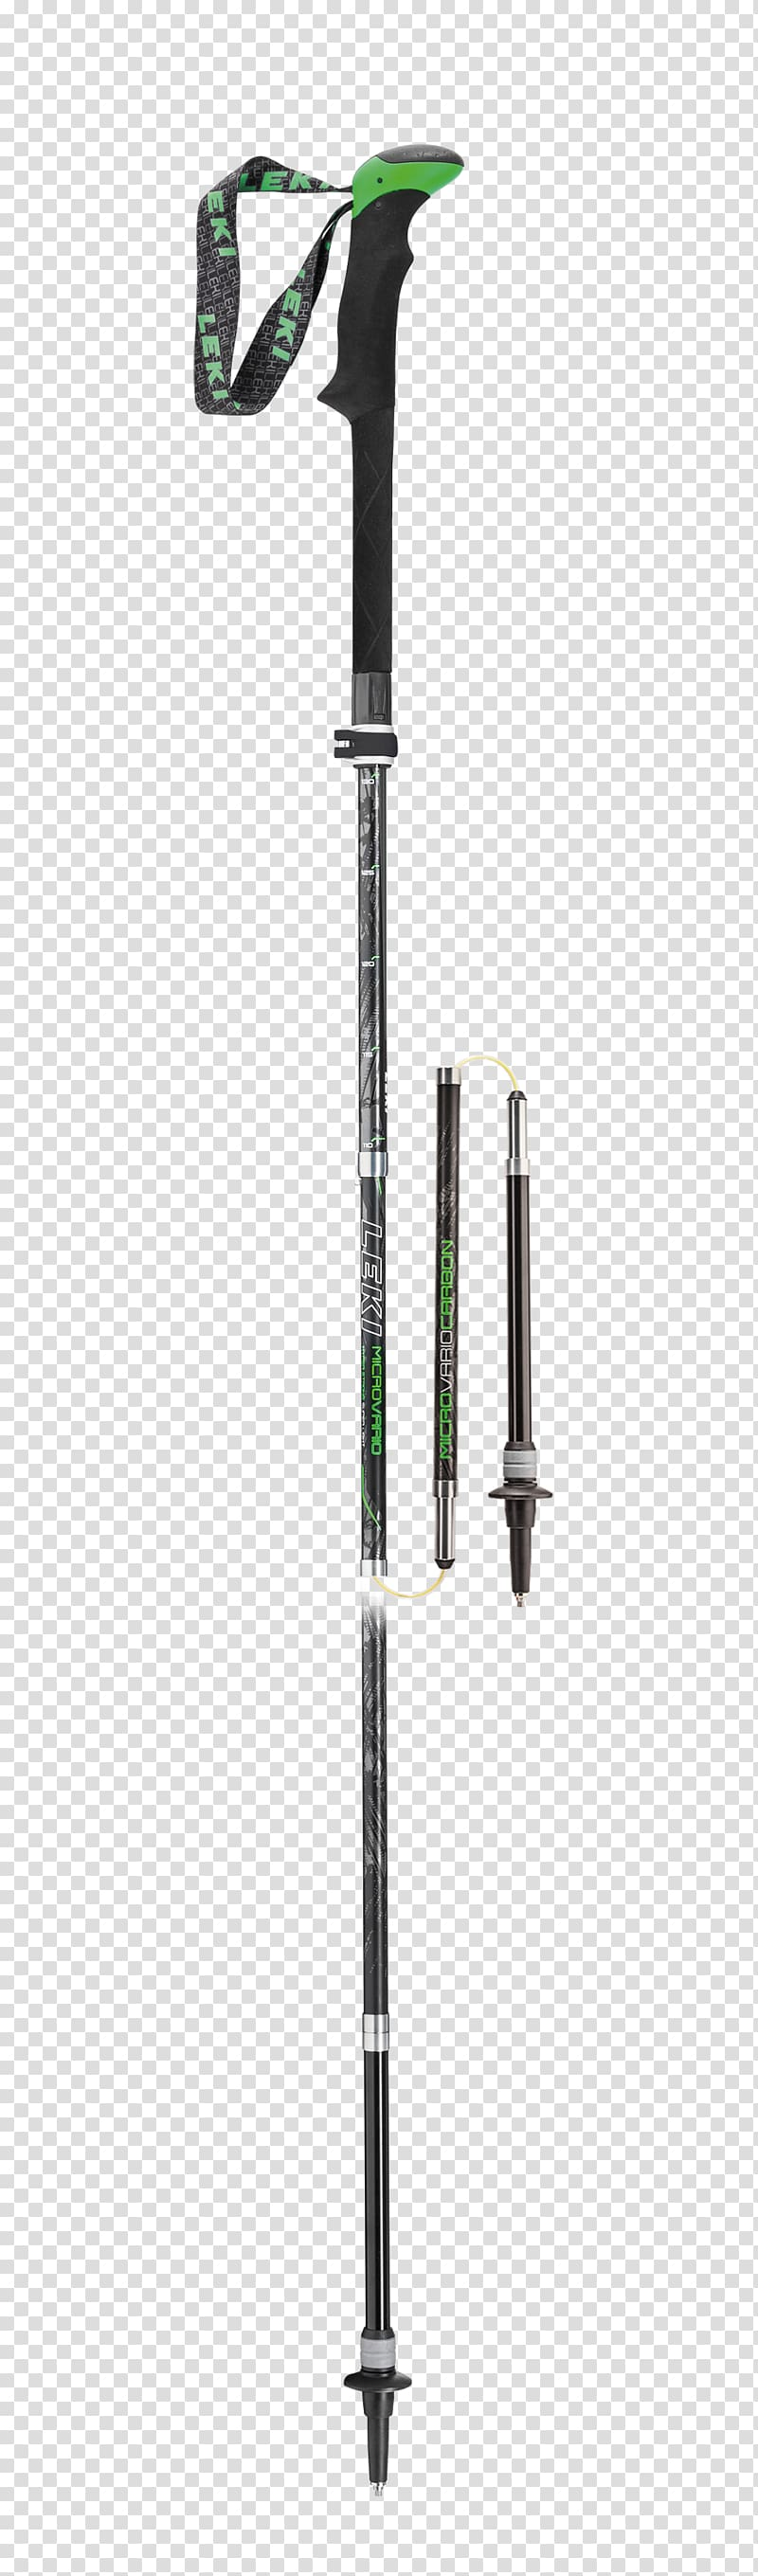 Hiking poles clipart picture transparent download Hiking Poles LEKI Lenhart GmbH Nordic walking Trail running ... picture transparent download